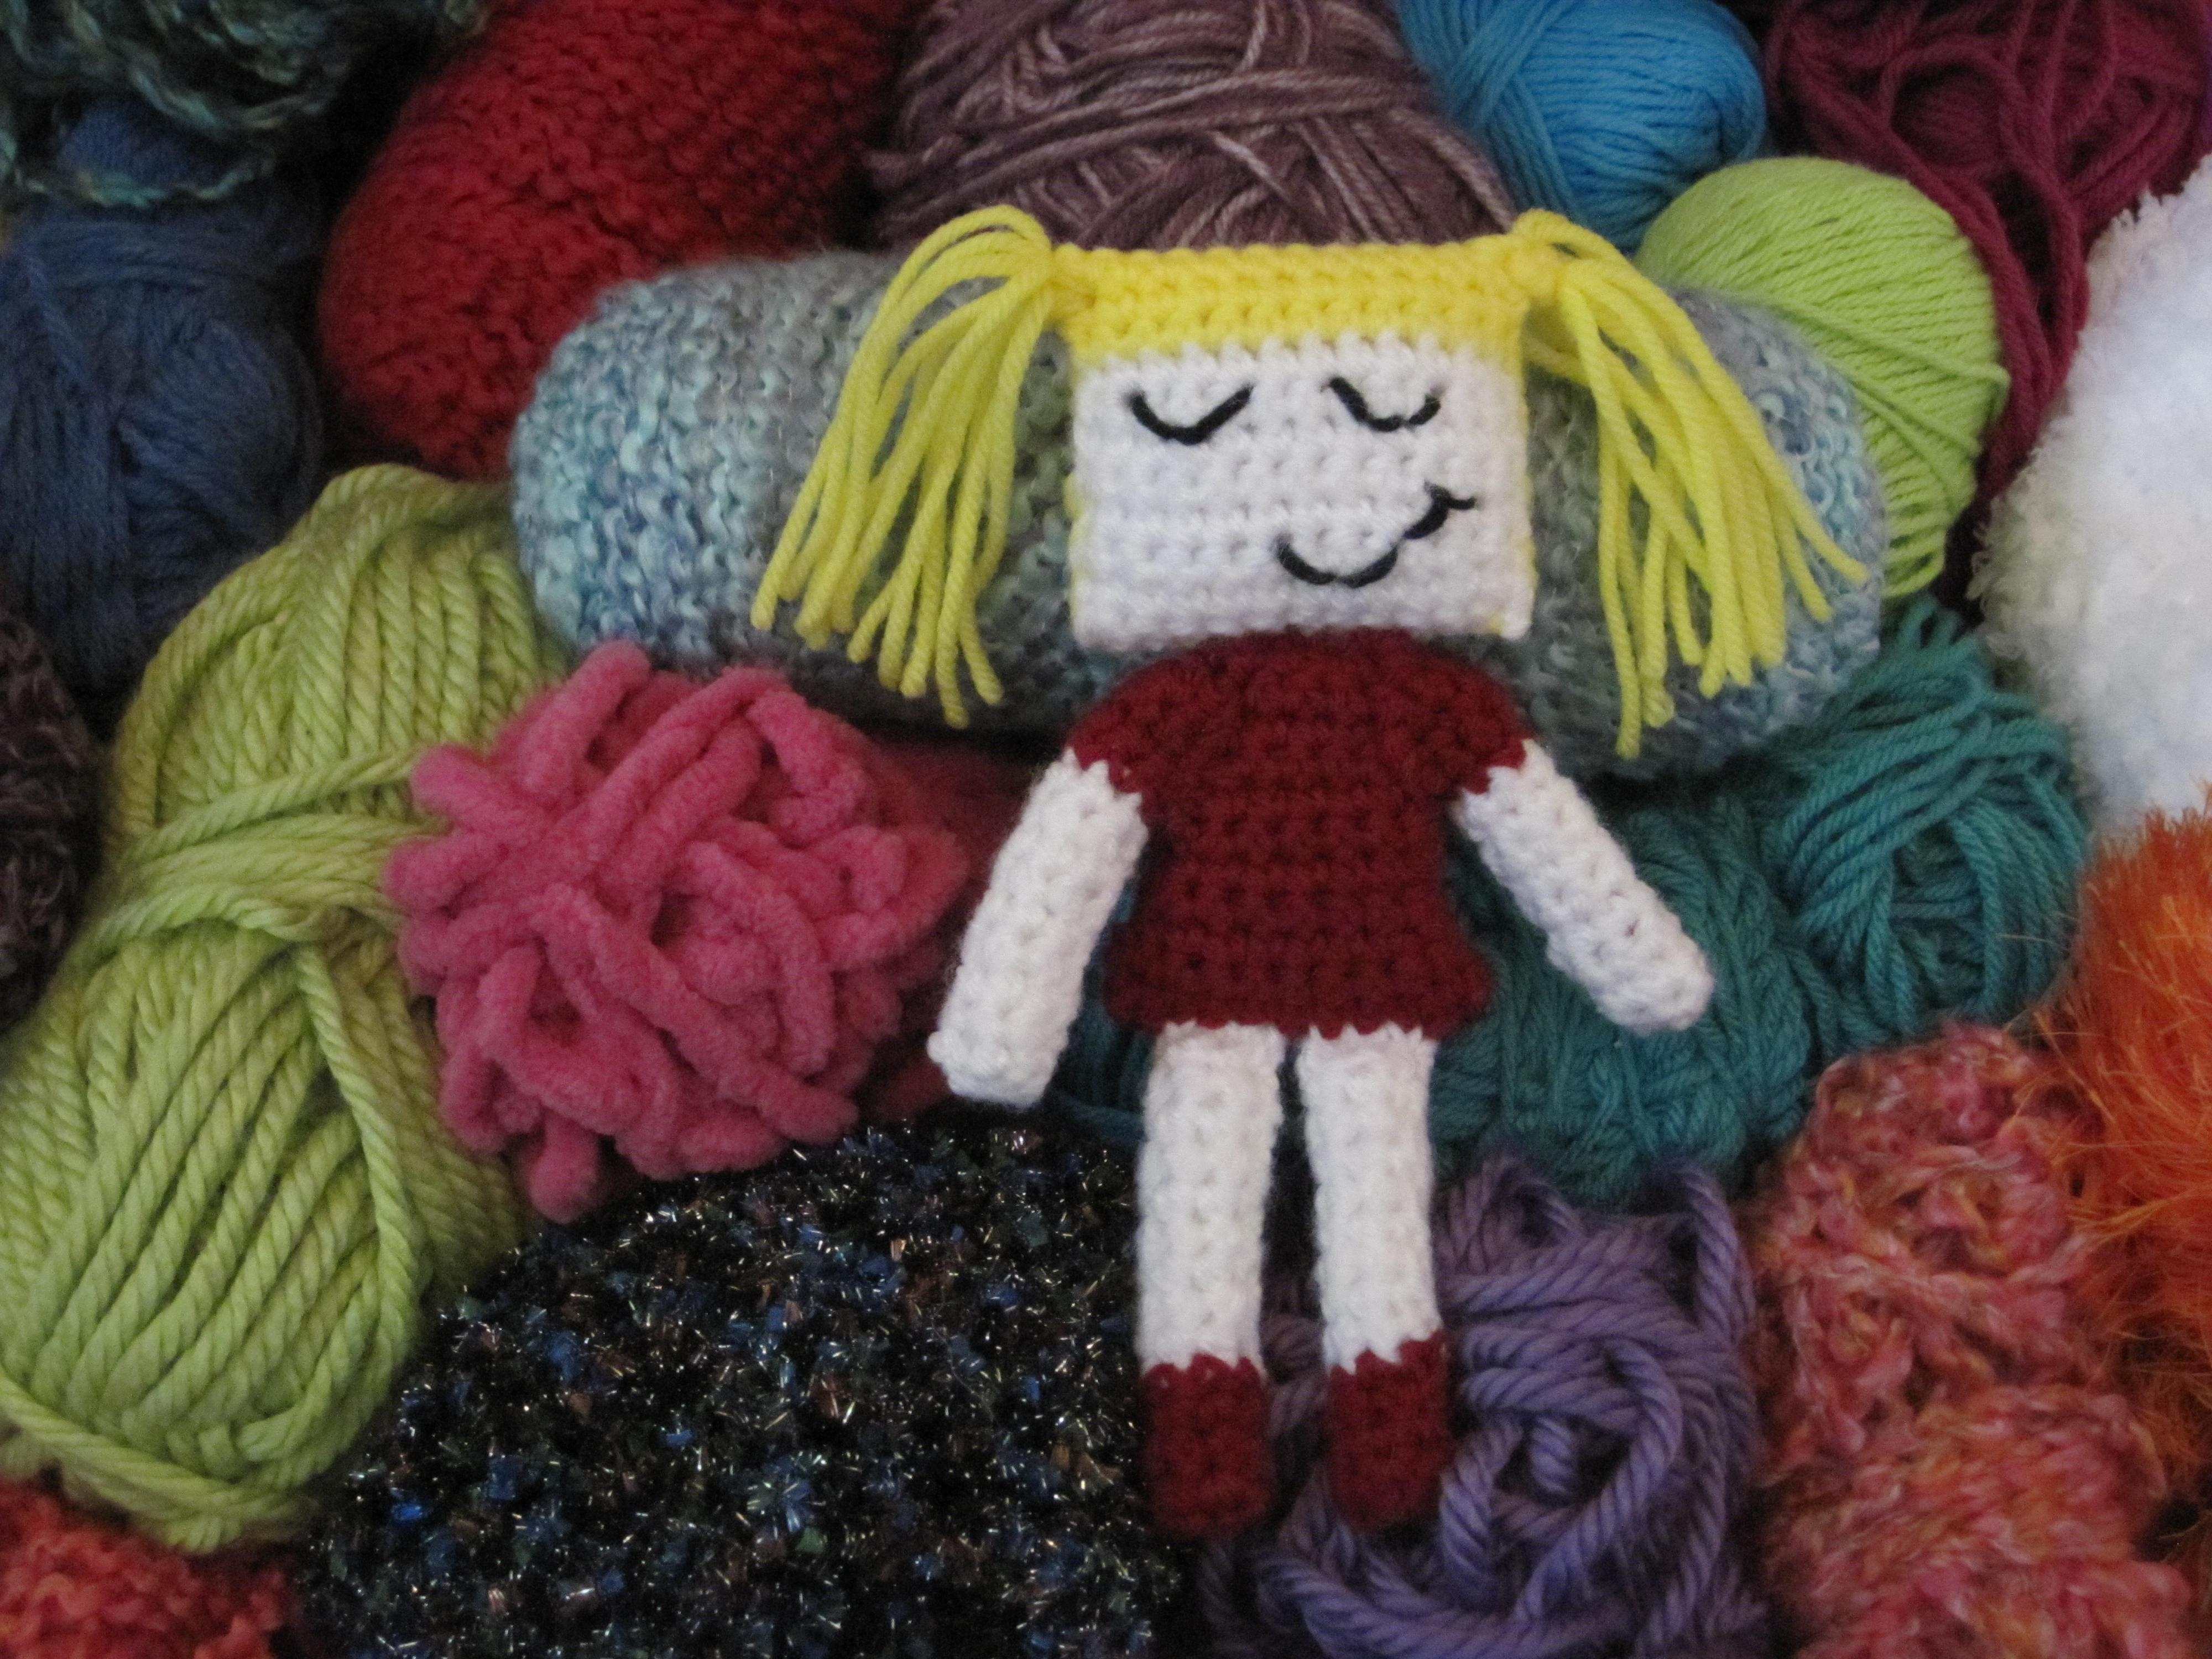 Crochet Basics 101: How to Create Your Own Rag Doll | Christine ...